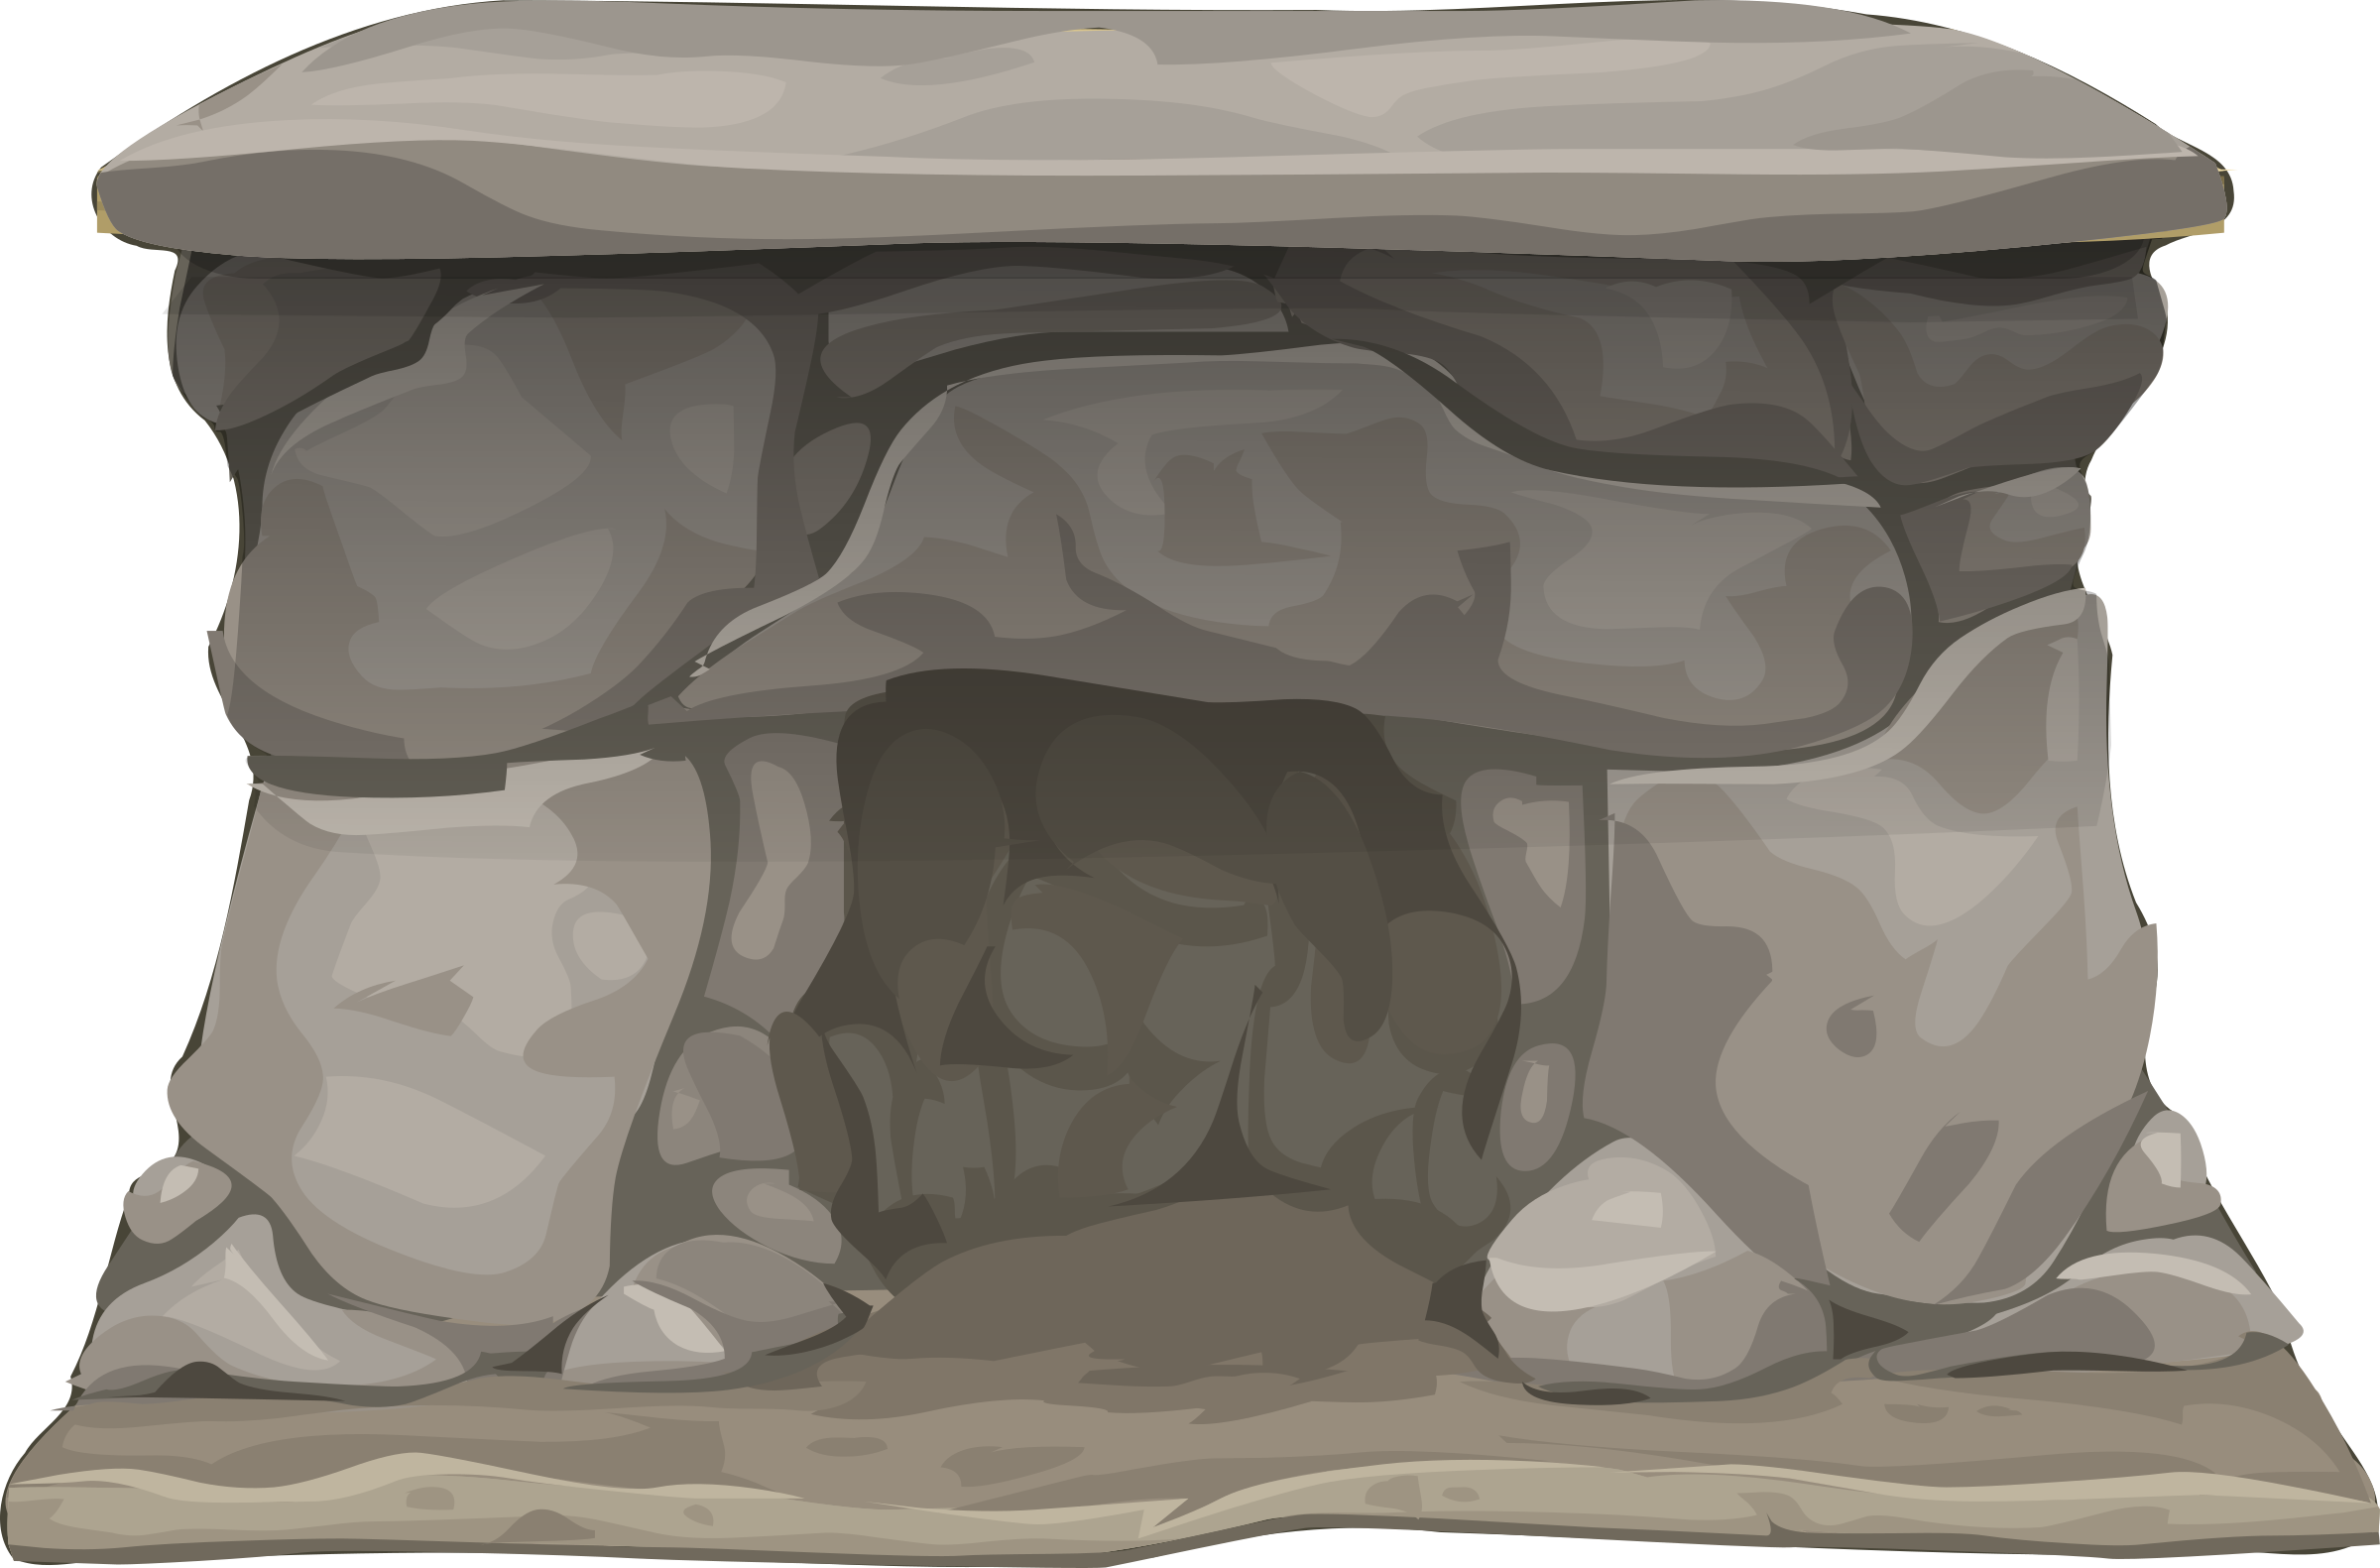 Stone fireplace (from Glitch) by anarres